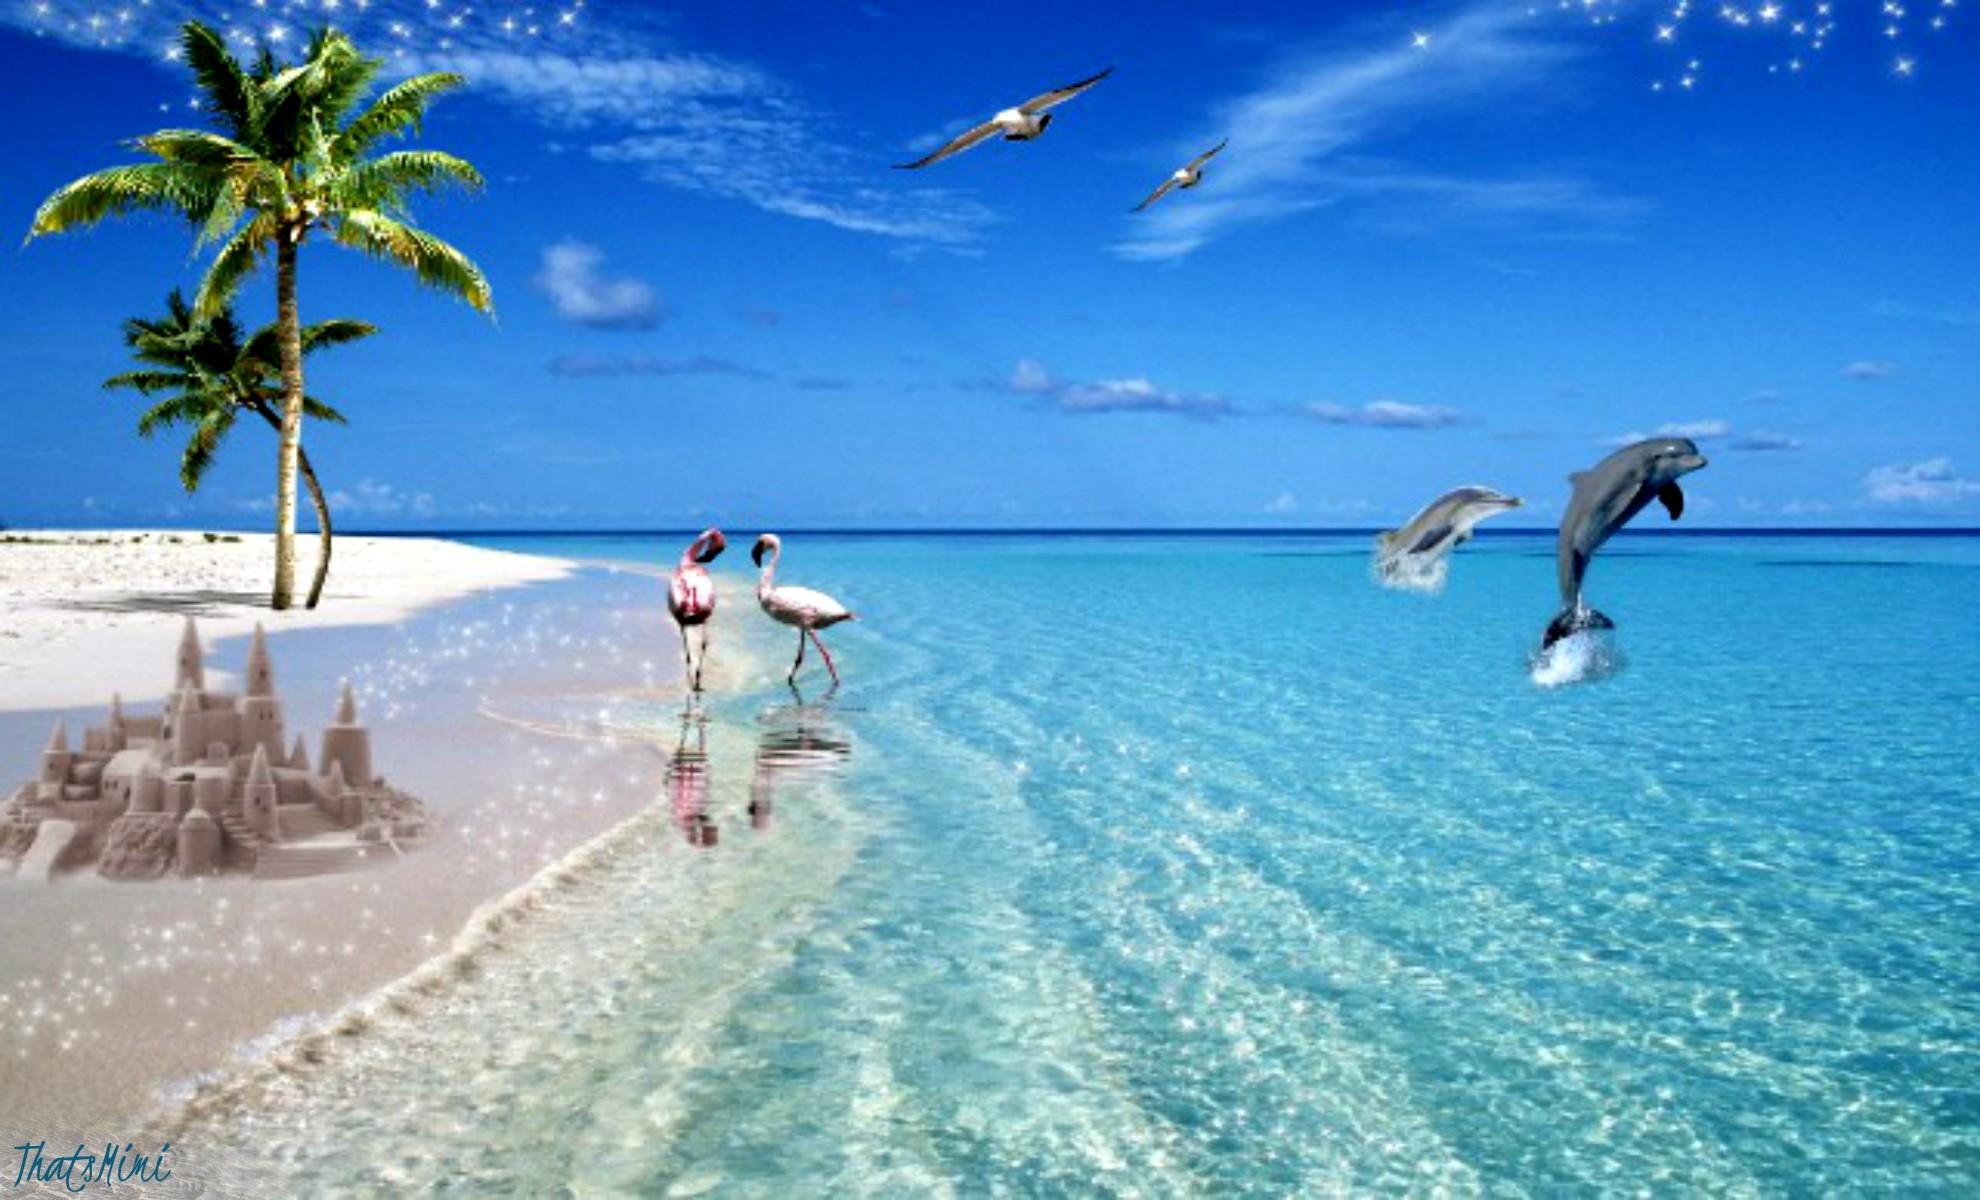 Paradise Wallpapers Tumblr 10 Dzbc HD Wallpapers Download free images and photos [musssic.tk]